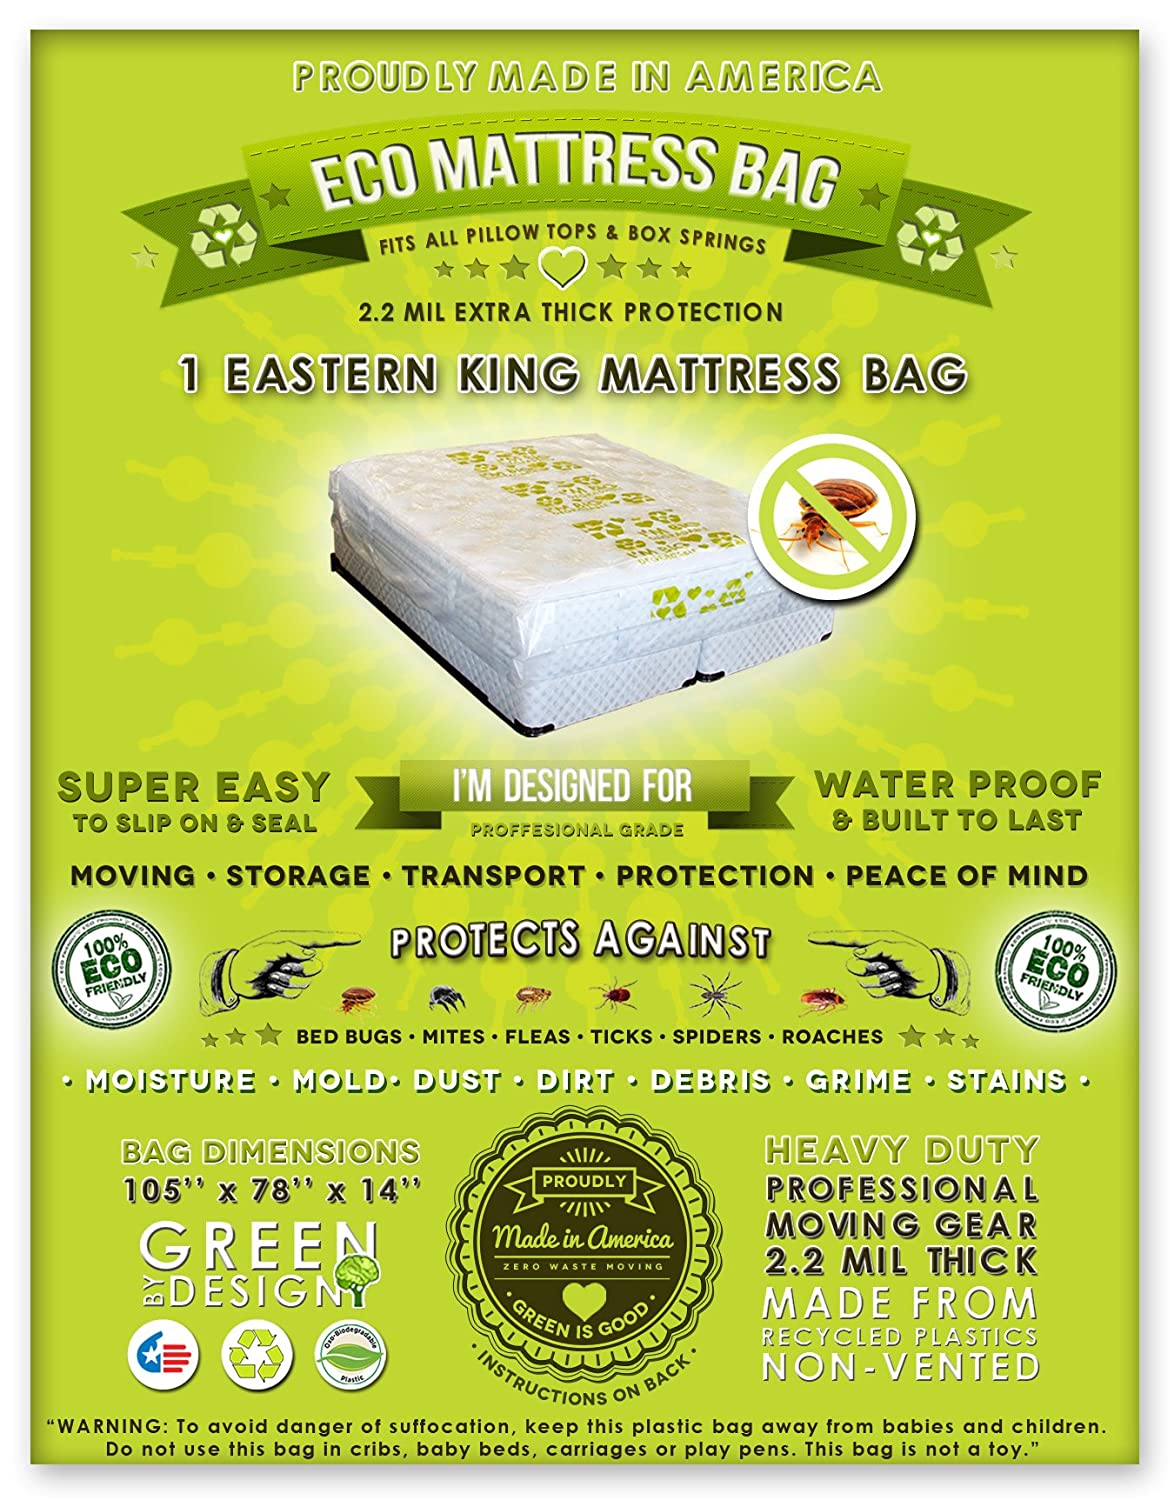 1 Eastern King Size Mattress Bag. Fits All Pillow Tops and Box Springs. Ideal for Moving, Storage and Protecting Your Mattress. Heavy Duty Professional Grade. Easy to Slip on and Seal. Sleep with Peace of Mind and Don't Let t